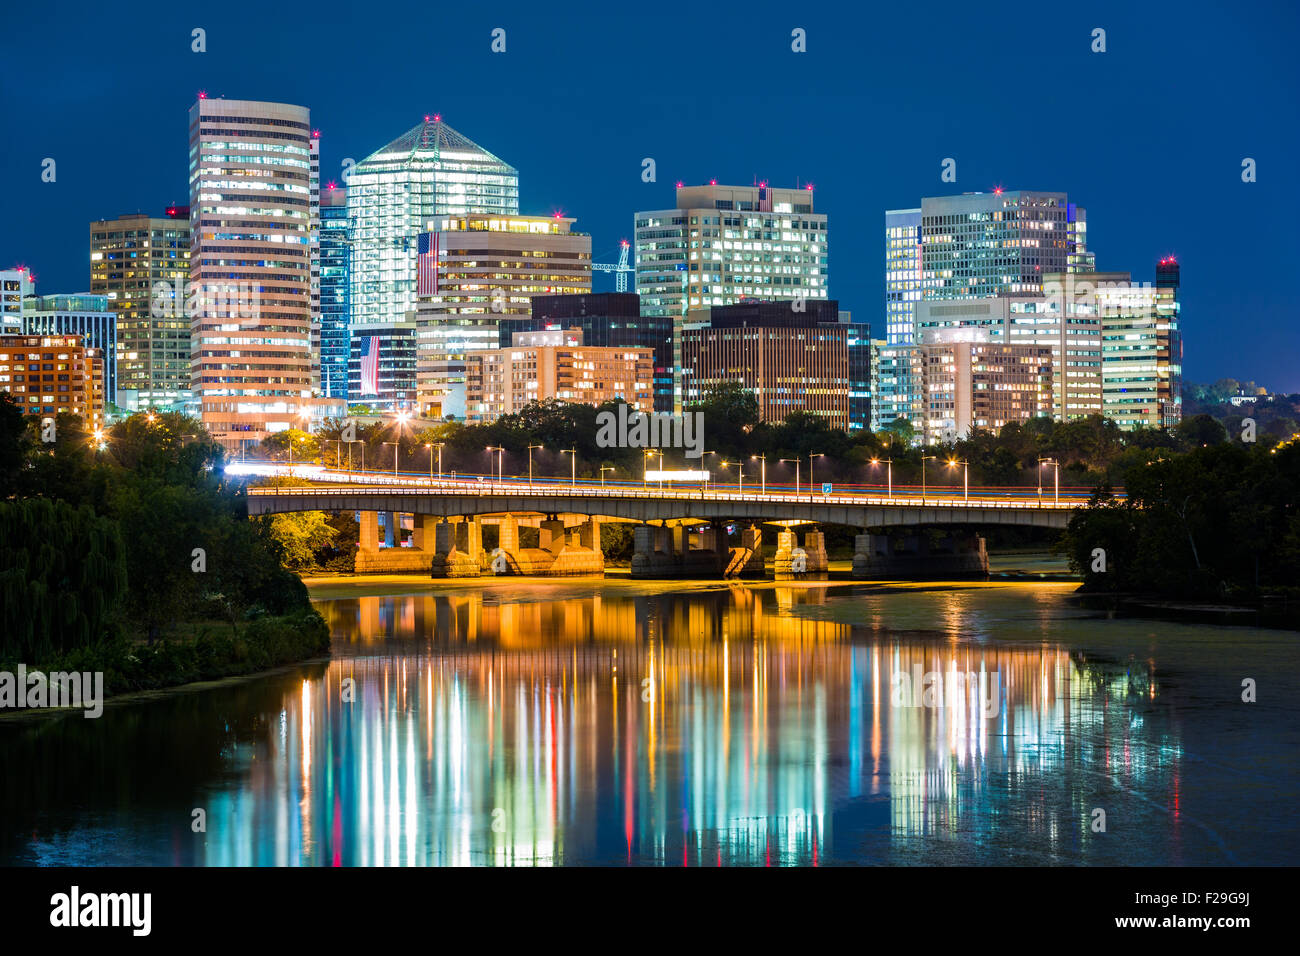 Rosslyn district skyline connected to Washington DC through Theodore Roosevelt memorial bridge. - Stock Image